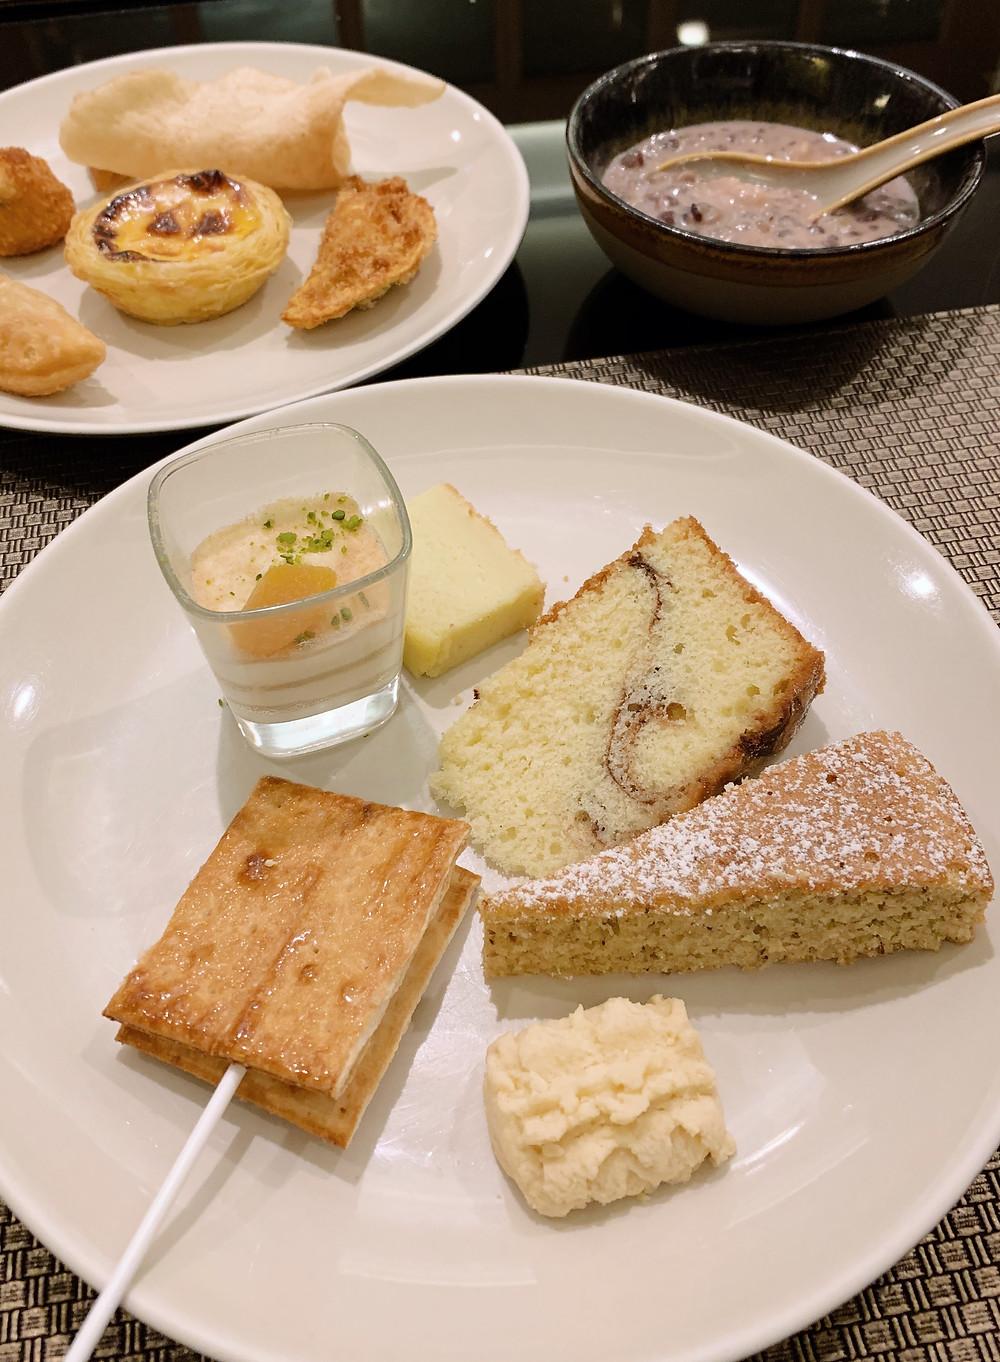 Cha gordo afternoon tea at the St Regis Hotel in Macao